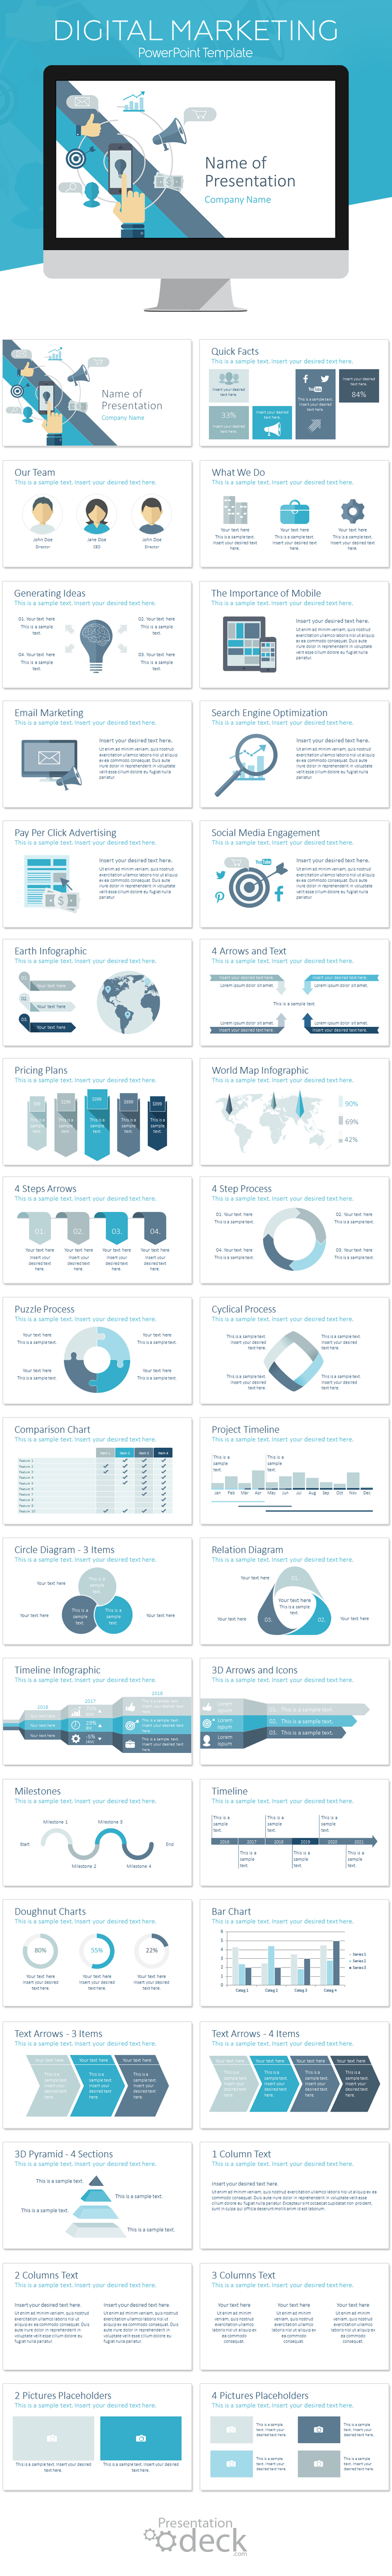 digital marketing powerpoint template | lead generation, flat, Presentation templates